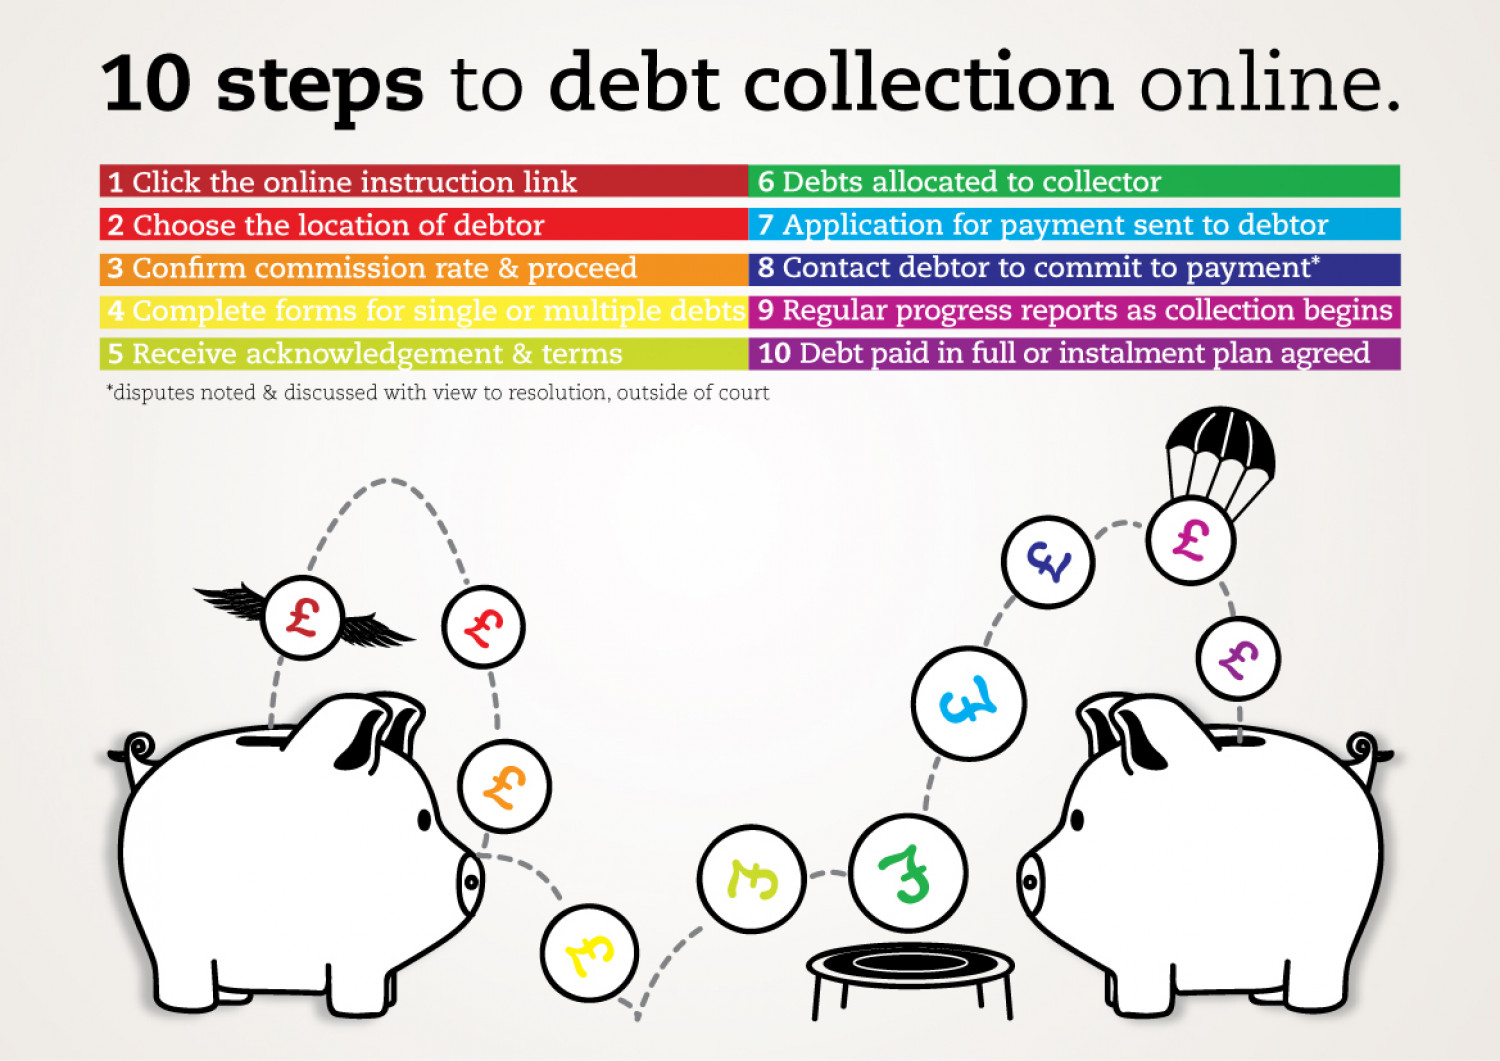 10 Steps To Online Debt Collection Infographic